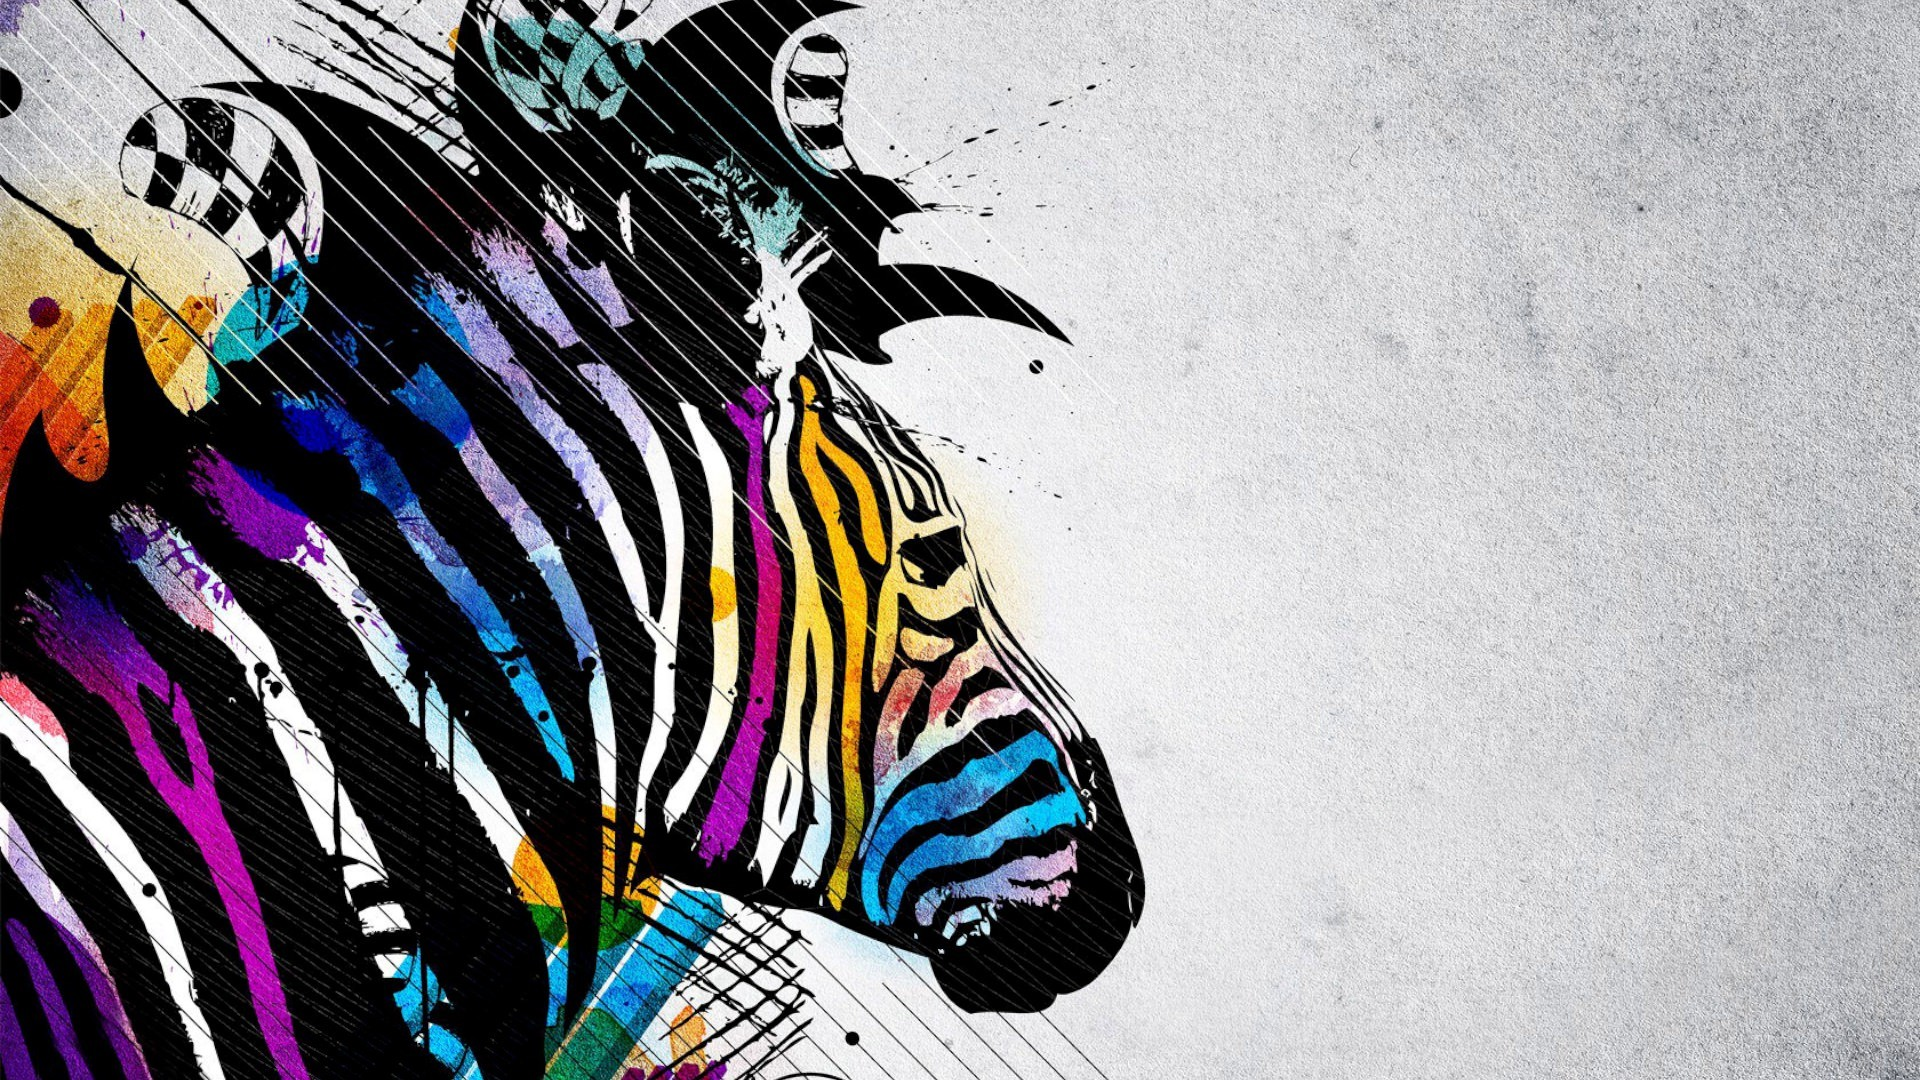 Zebra 3D Abstract Wallpaper